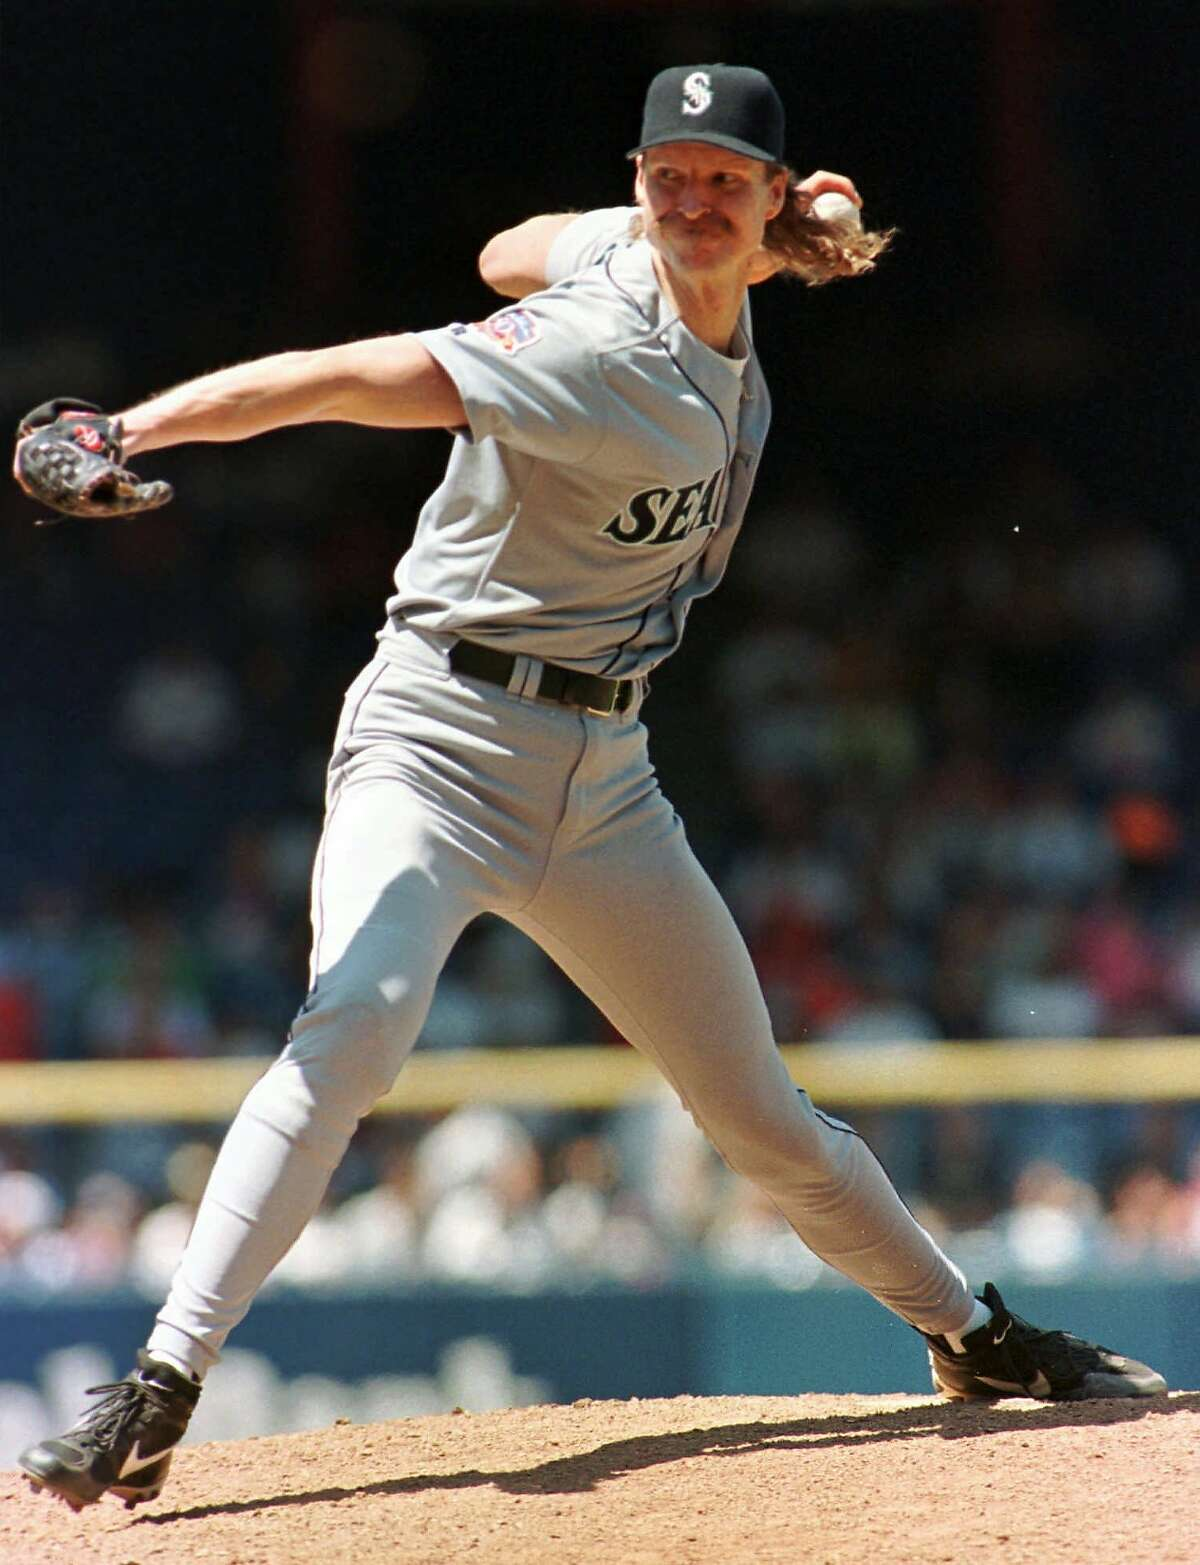 3. LHP Randy Johnson W-L with the Mariners: 130-74